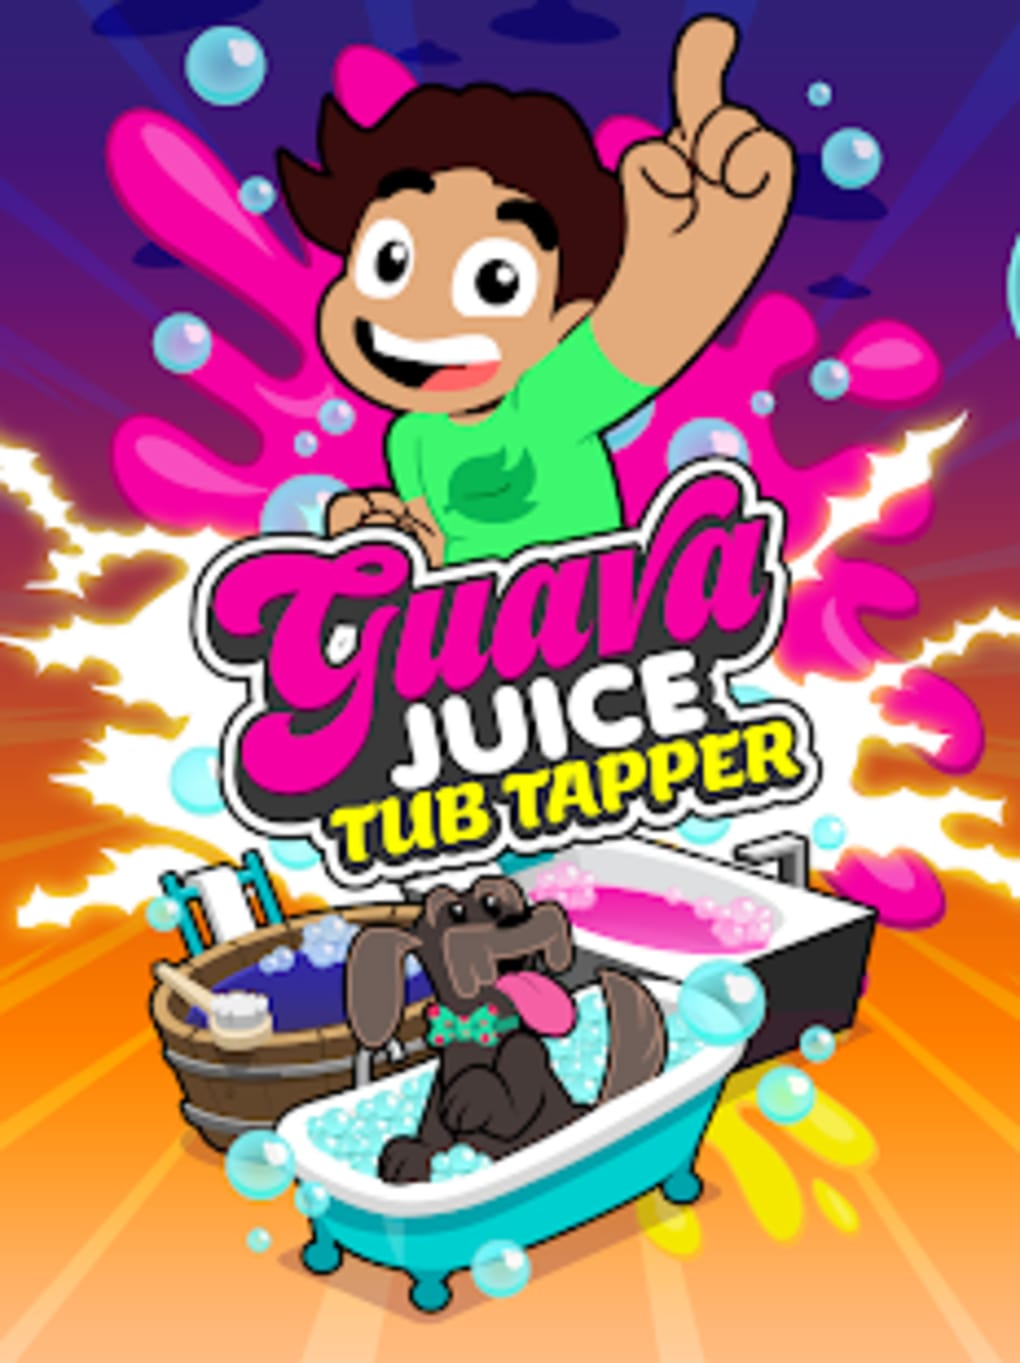 Guava Juice Tub Tapper For Android Download